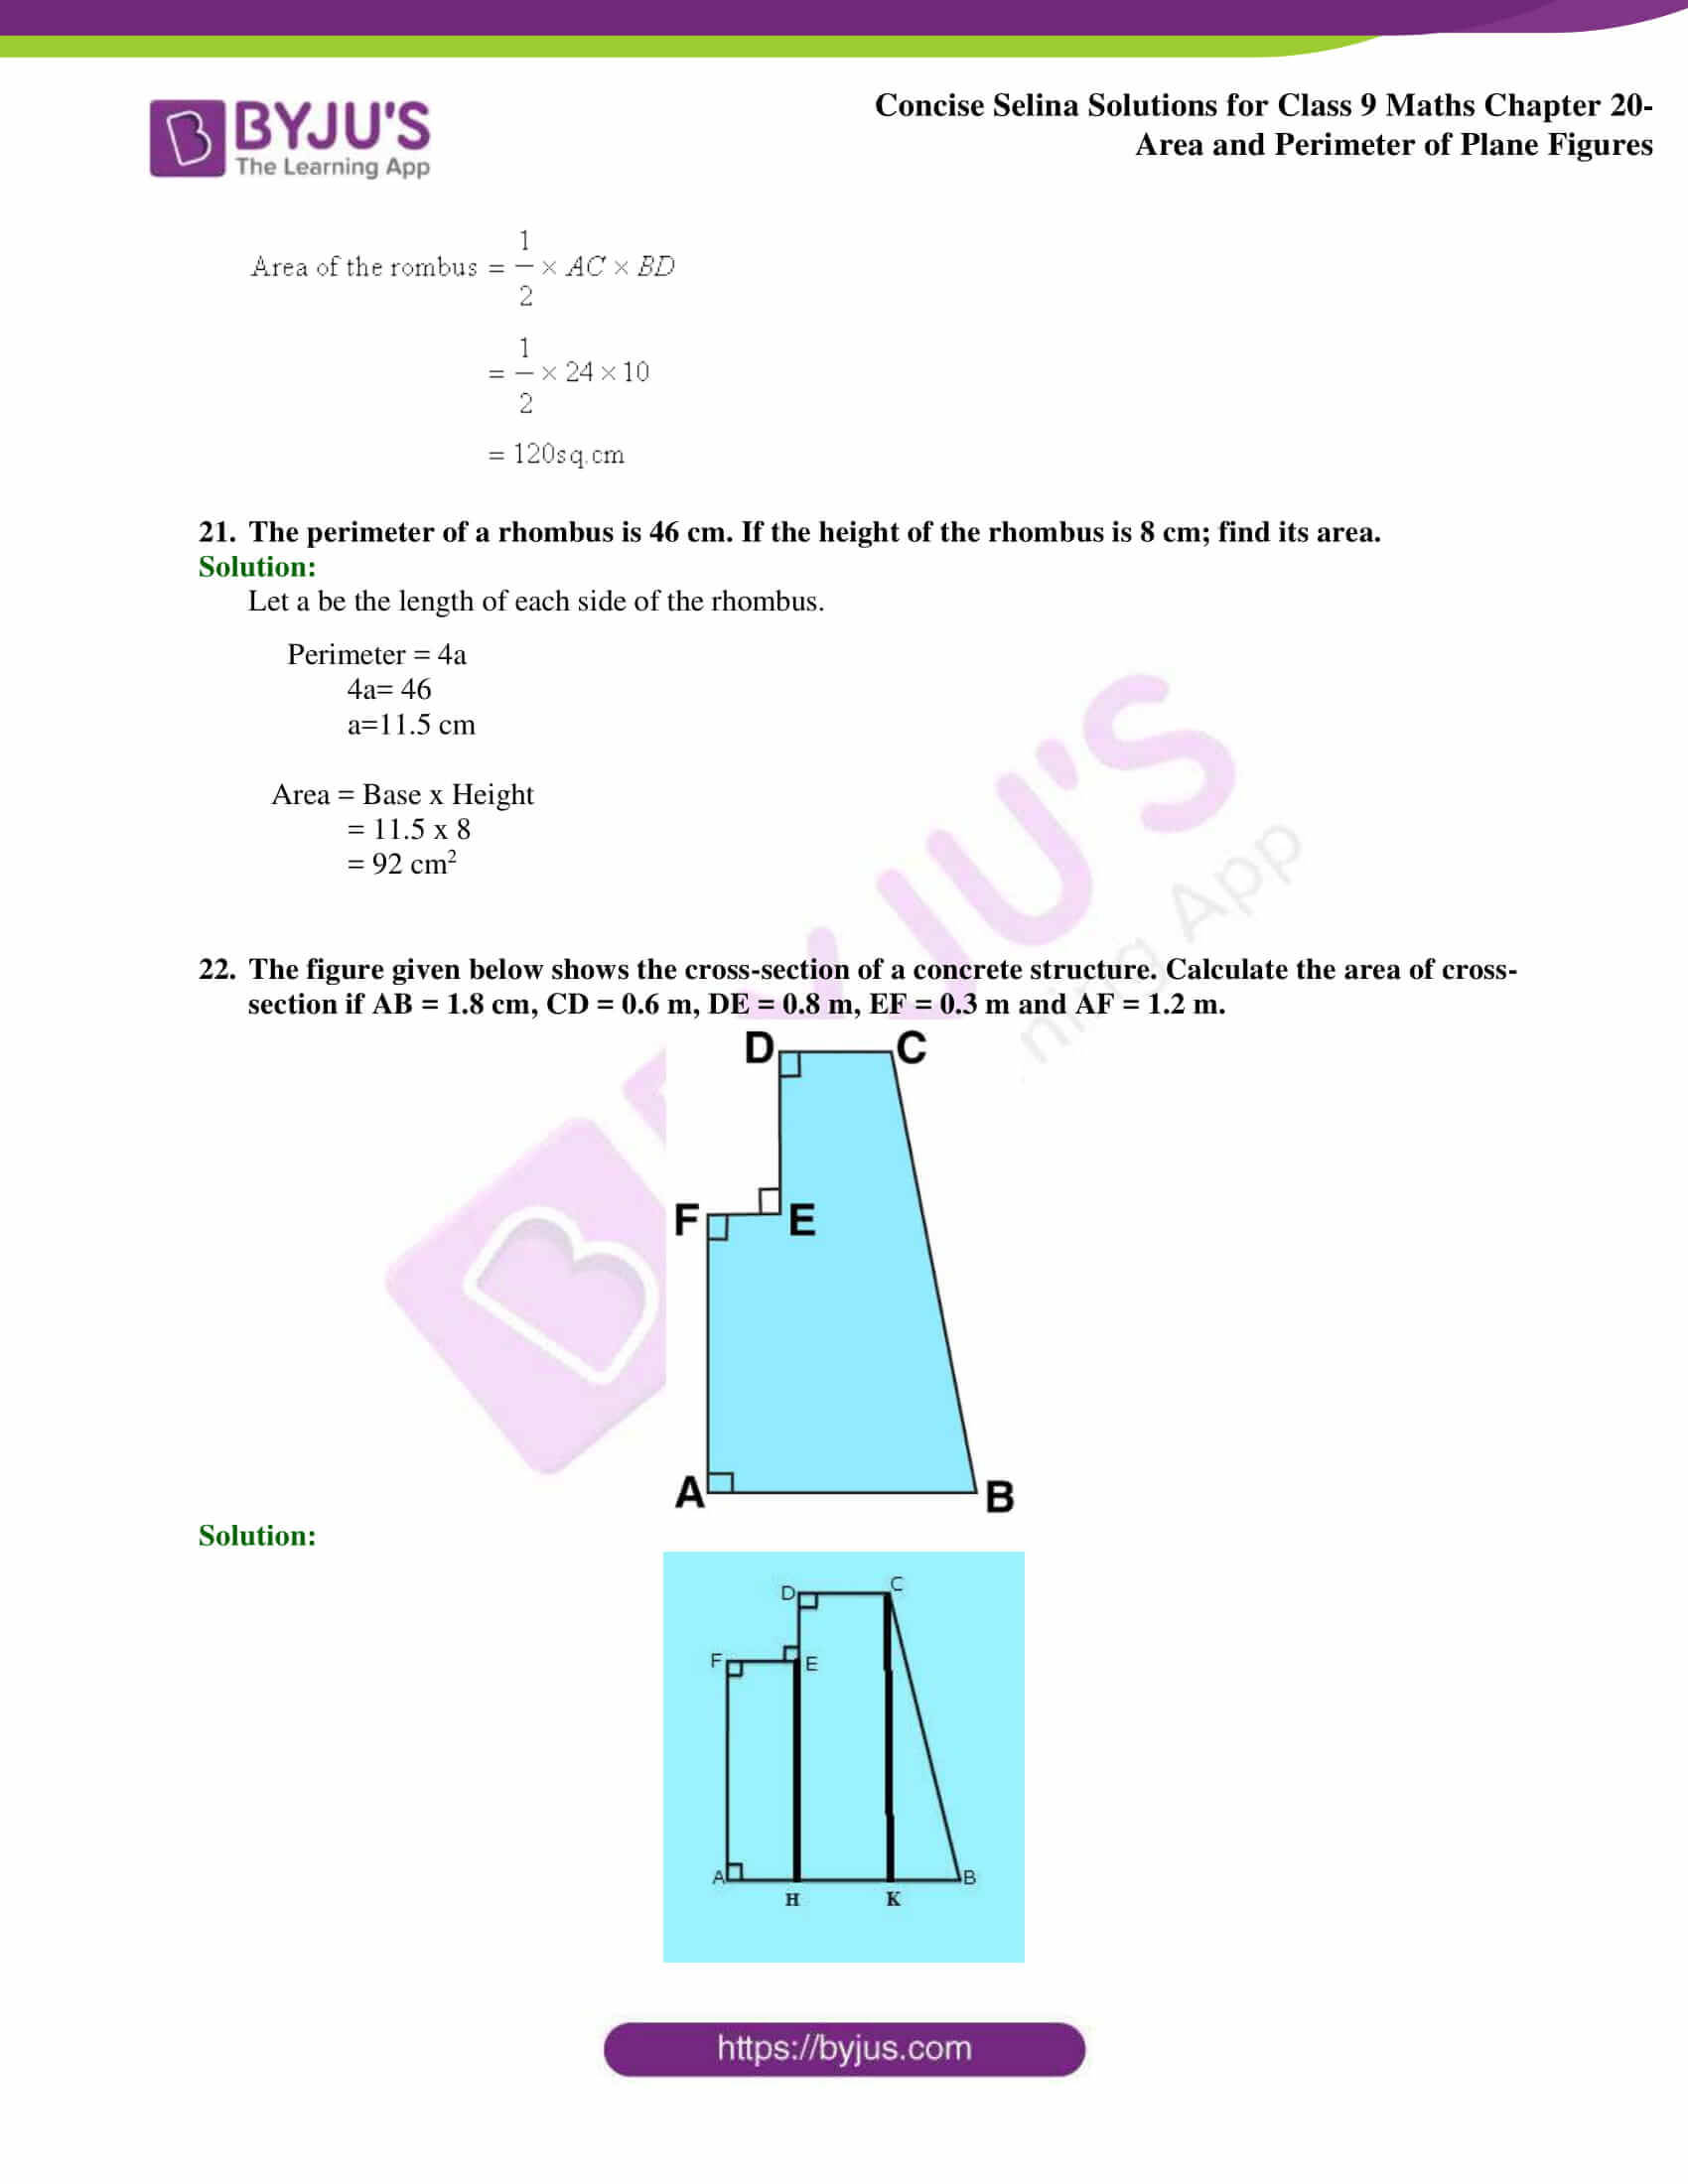 Concise Selina Solutions Class 9 Maths Chapter 20 Area and Perimeter of Plane part 21